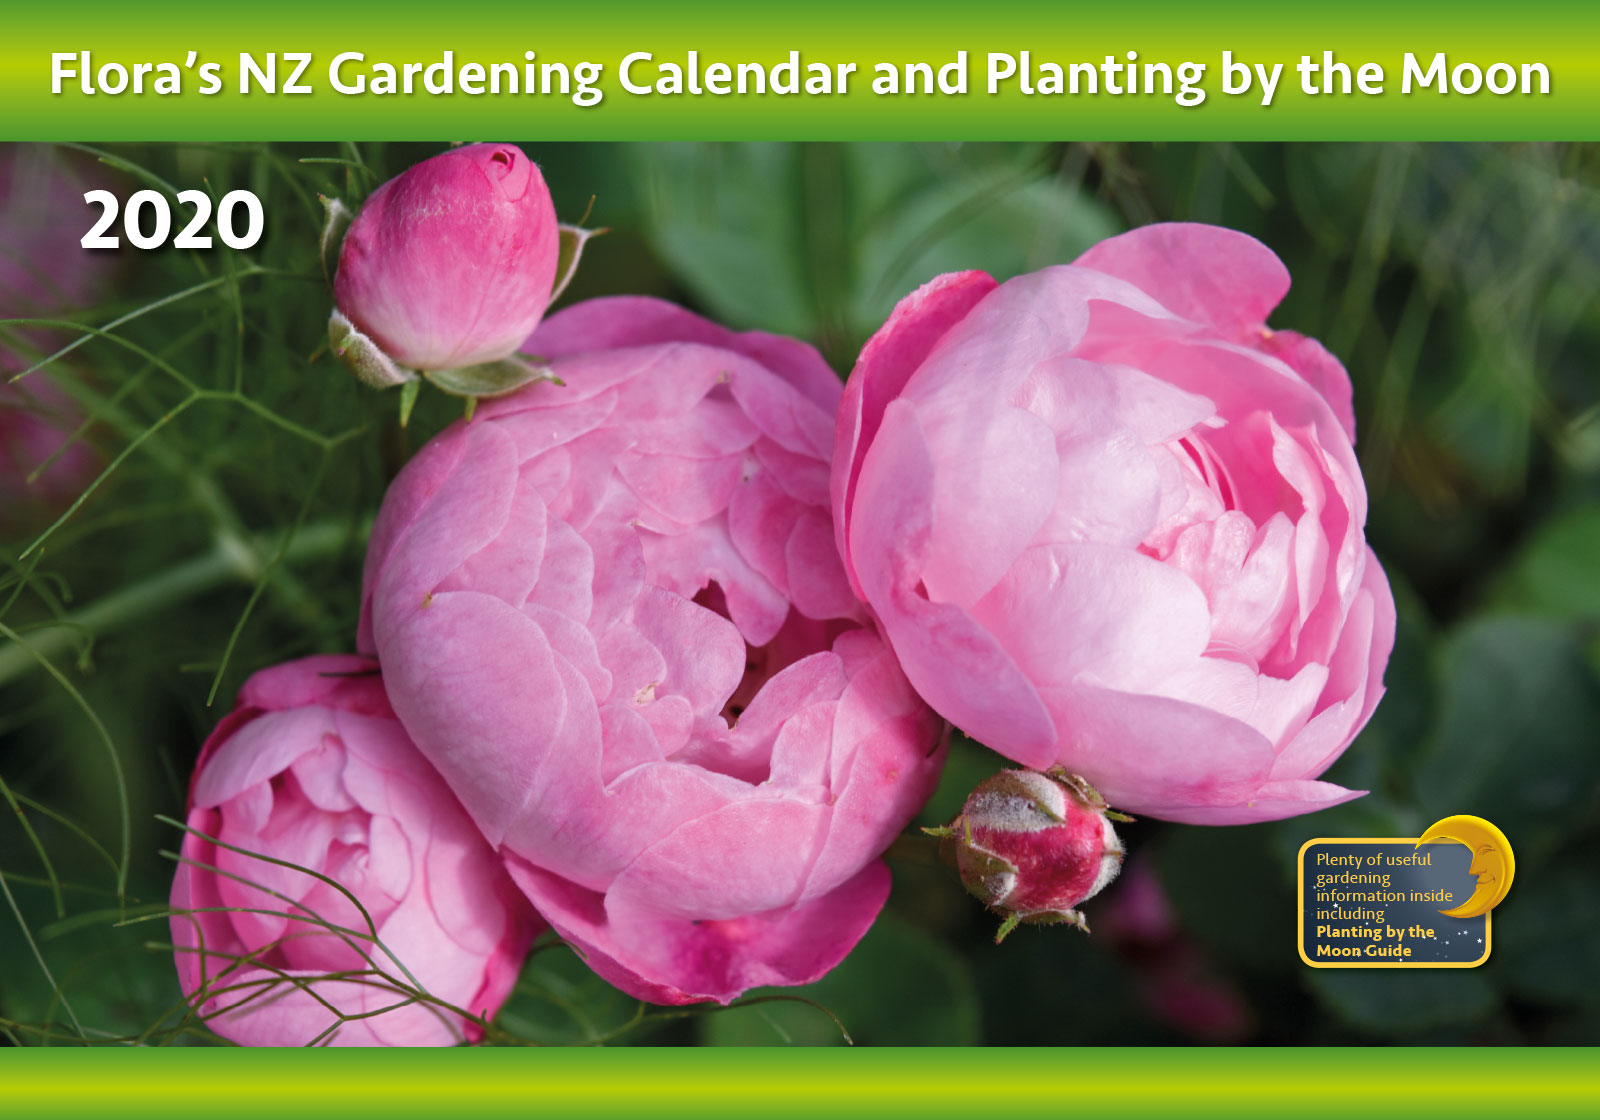 Flora's Gardening Calendar and Planting by the Moon 2018